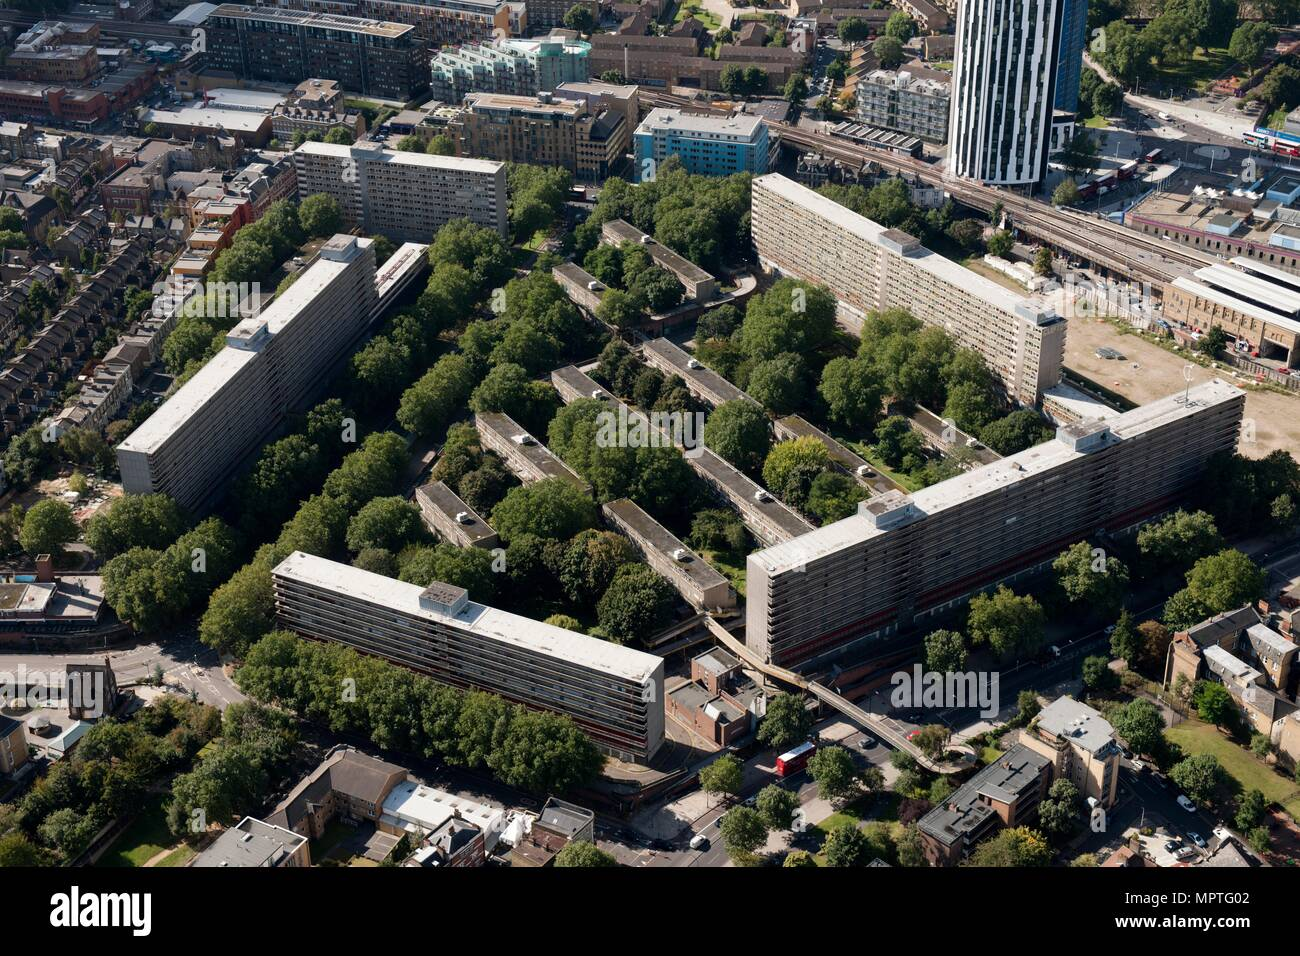 Heygate Estate, Heygate Street, Elephant and Castle, London, 2012. Artist: Damian Grady. - Stock Image